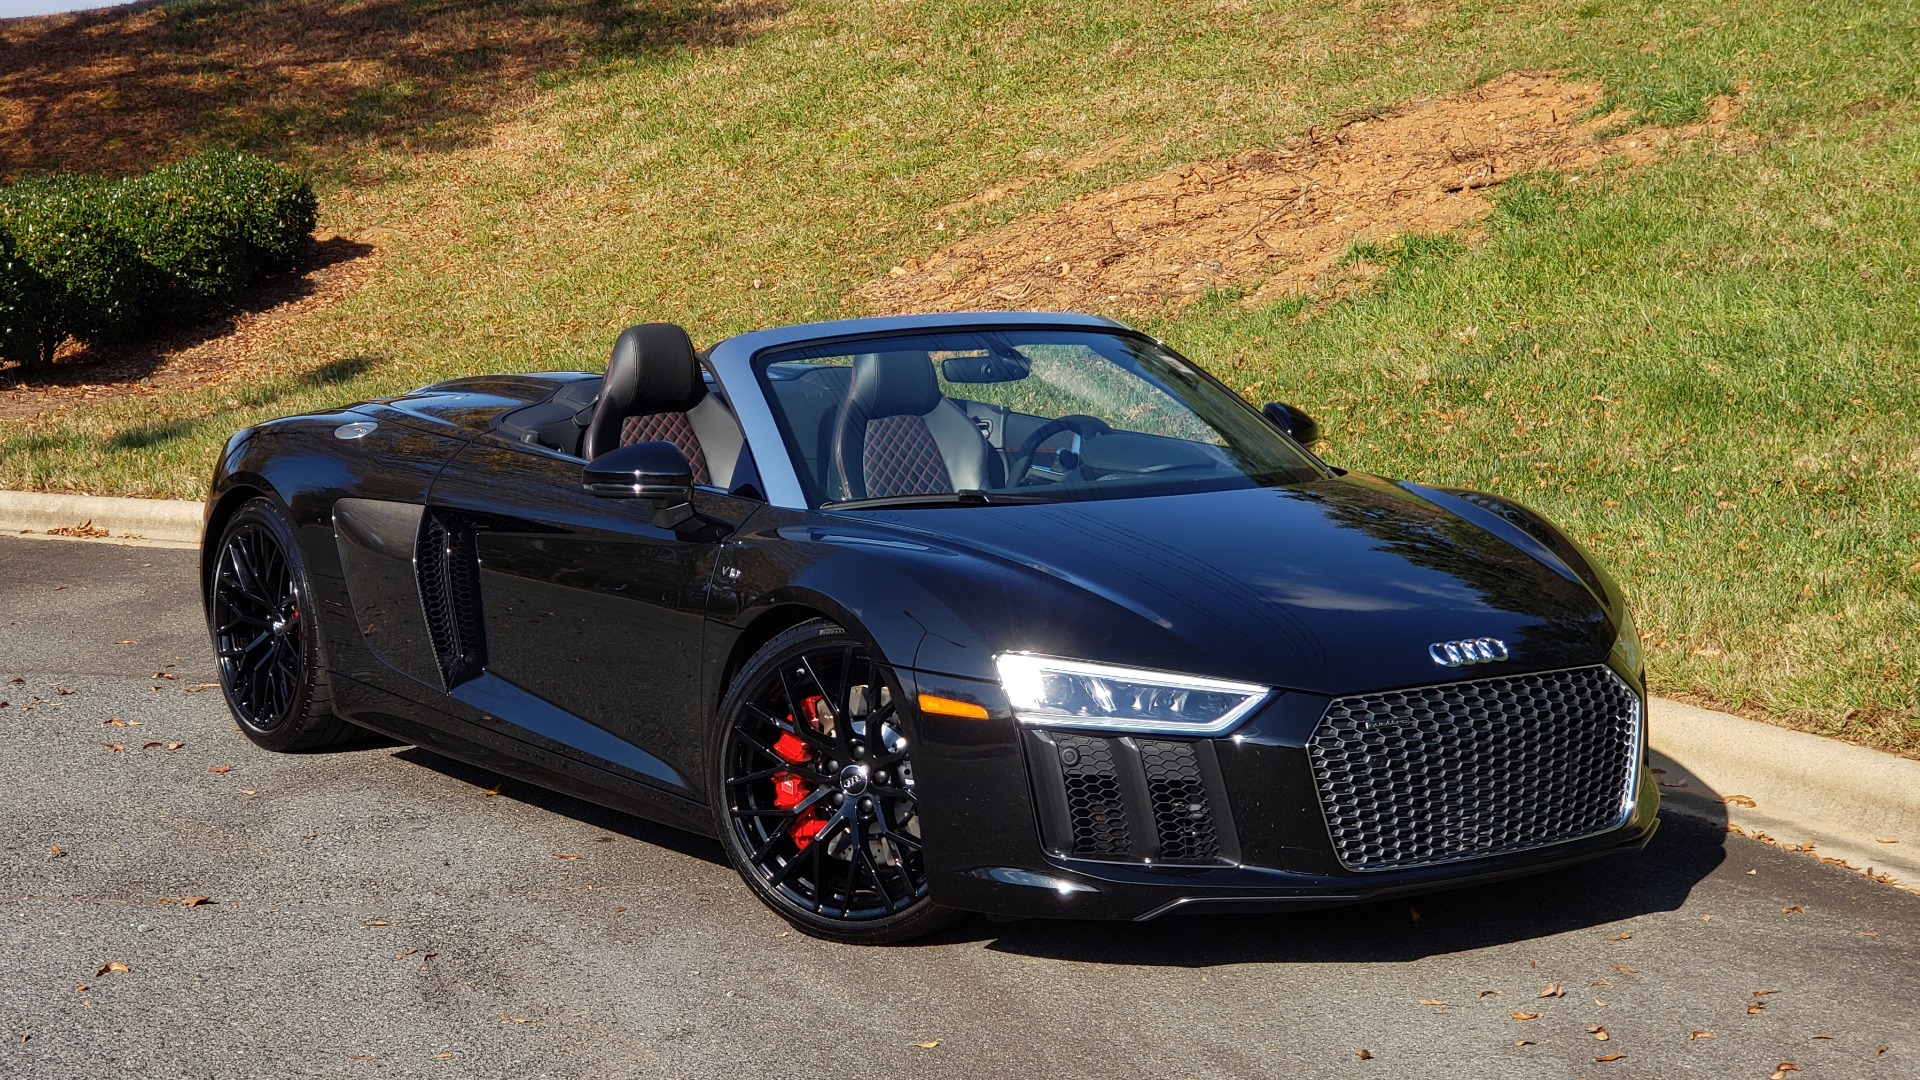 Used 2017 Audi R8 SPYDER V10 S-TRONIC / CARBON EXT & INT PKG / NAV / REARVIEW for sale Sold at Formula Imports in Charlotte NC 28227 13